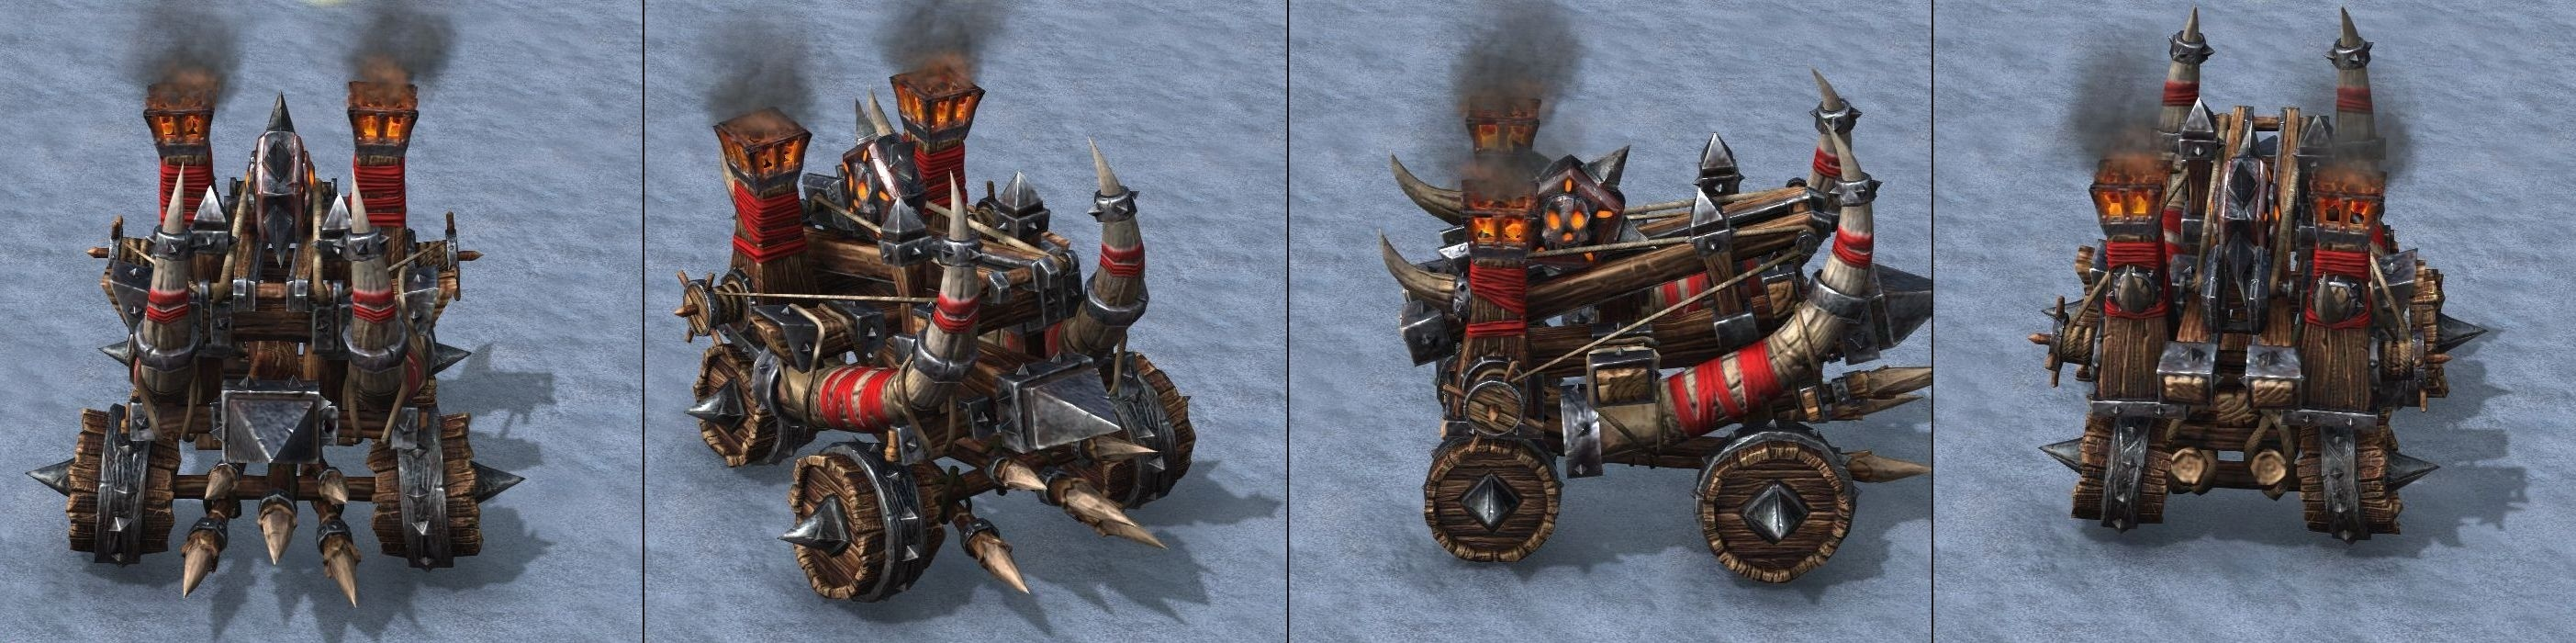 Warcraft 3 Reforged Demolisher